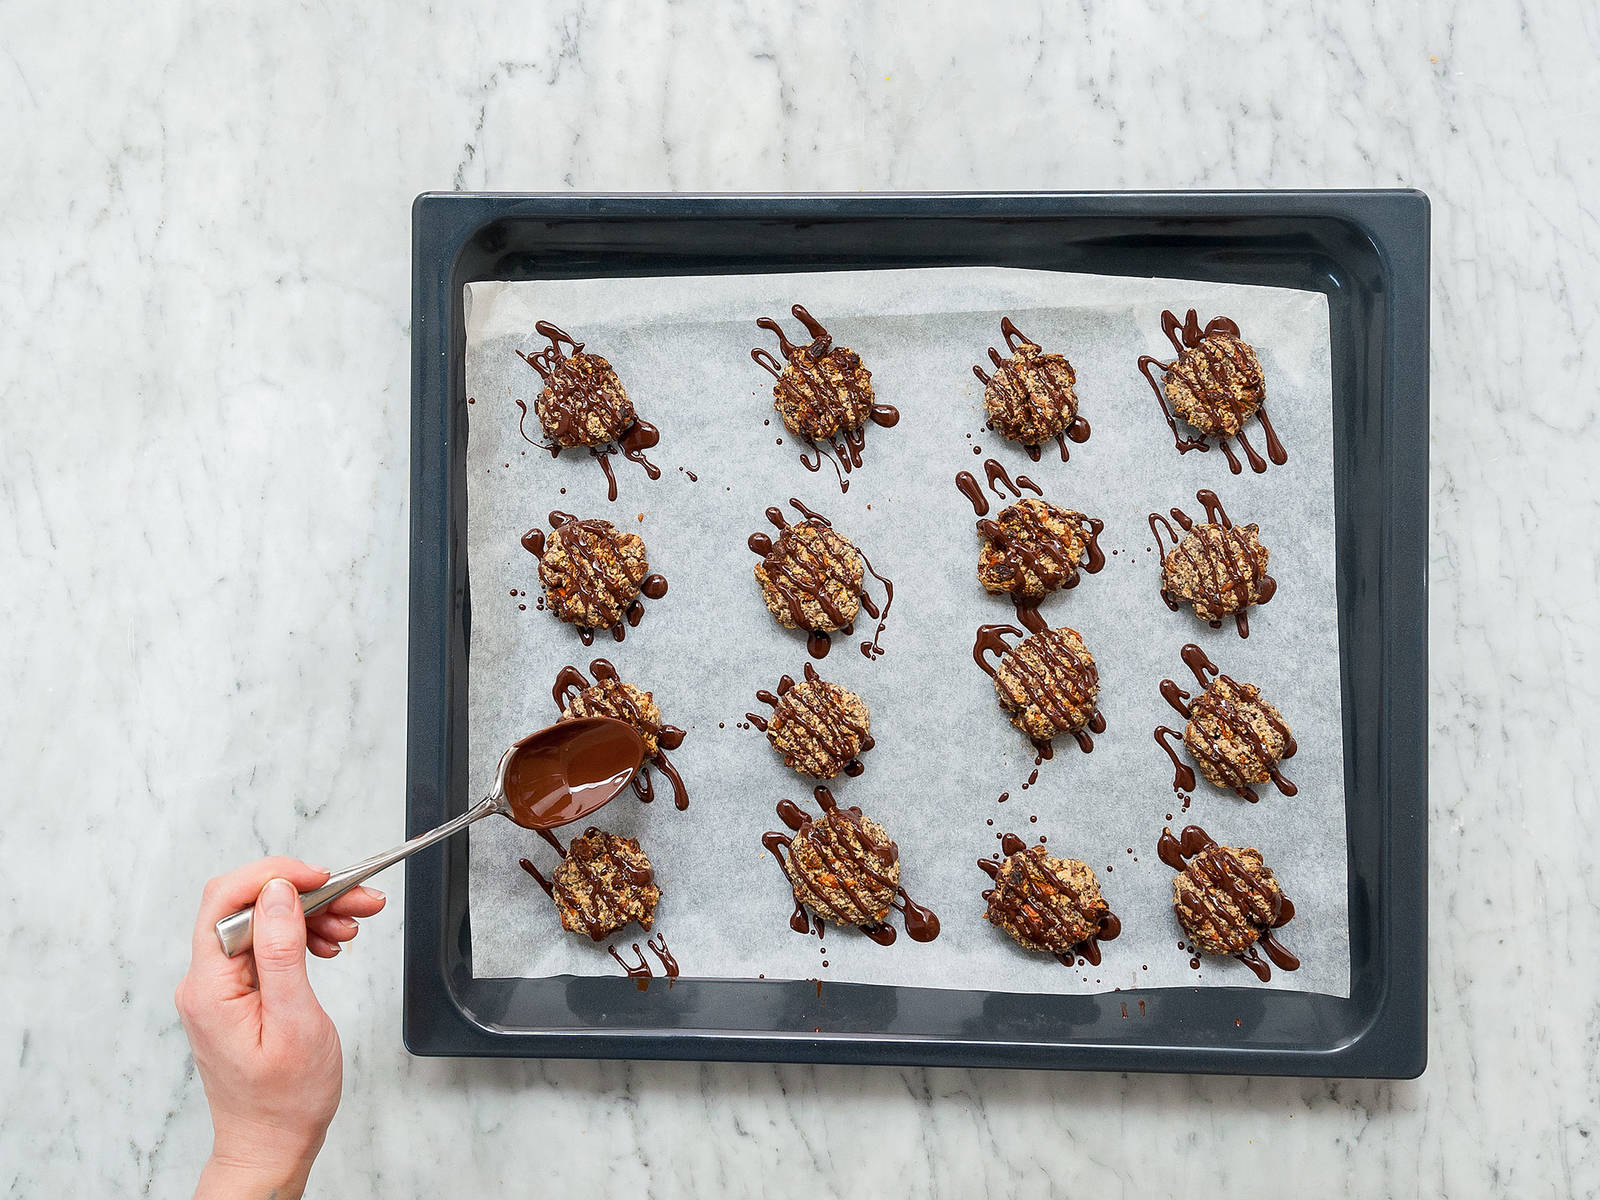 In the meantime, melt dark chocolate in a heatproof bowl set over a pot of simmering water. Drizzle melted chocolate over the chilled cookies and enjoy!